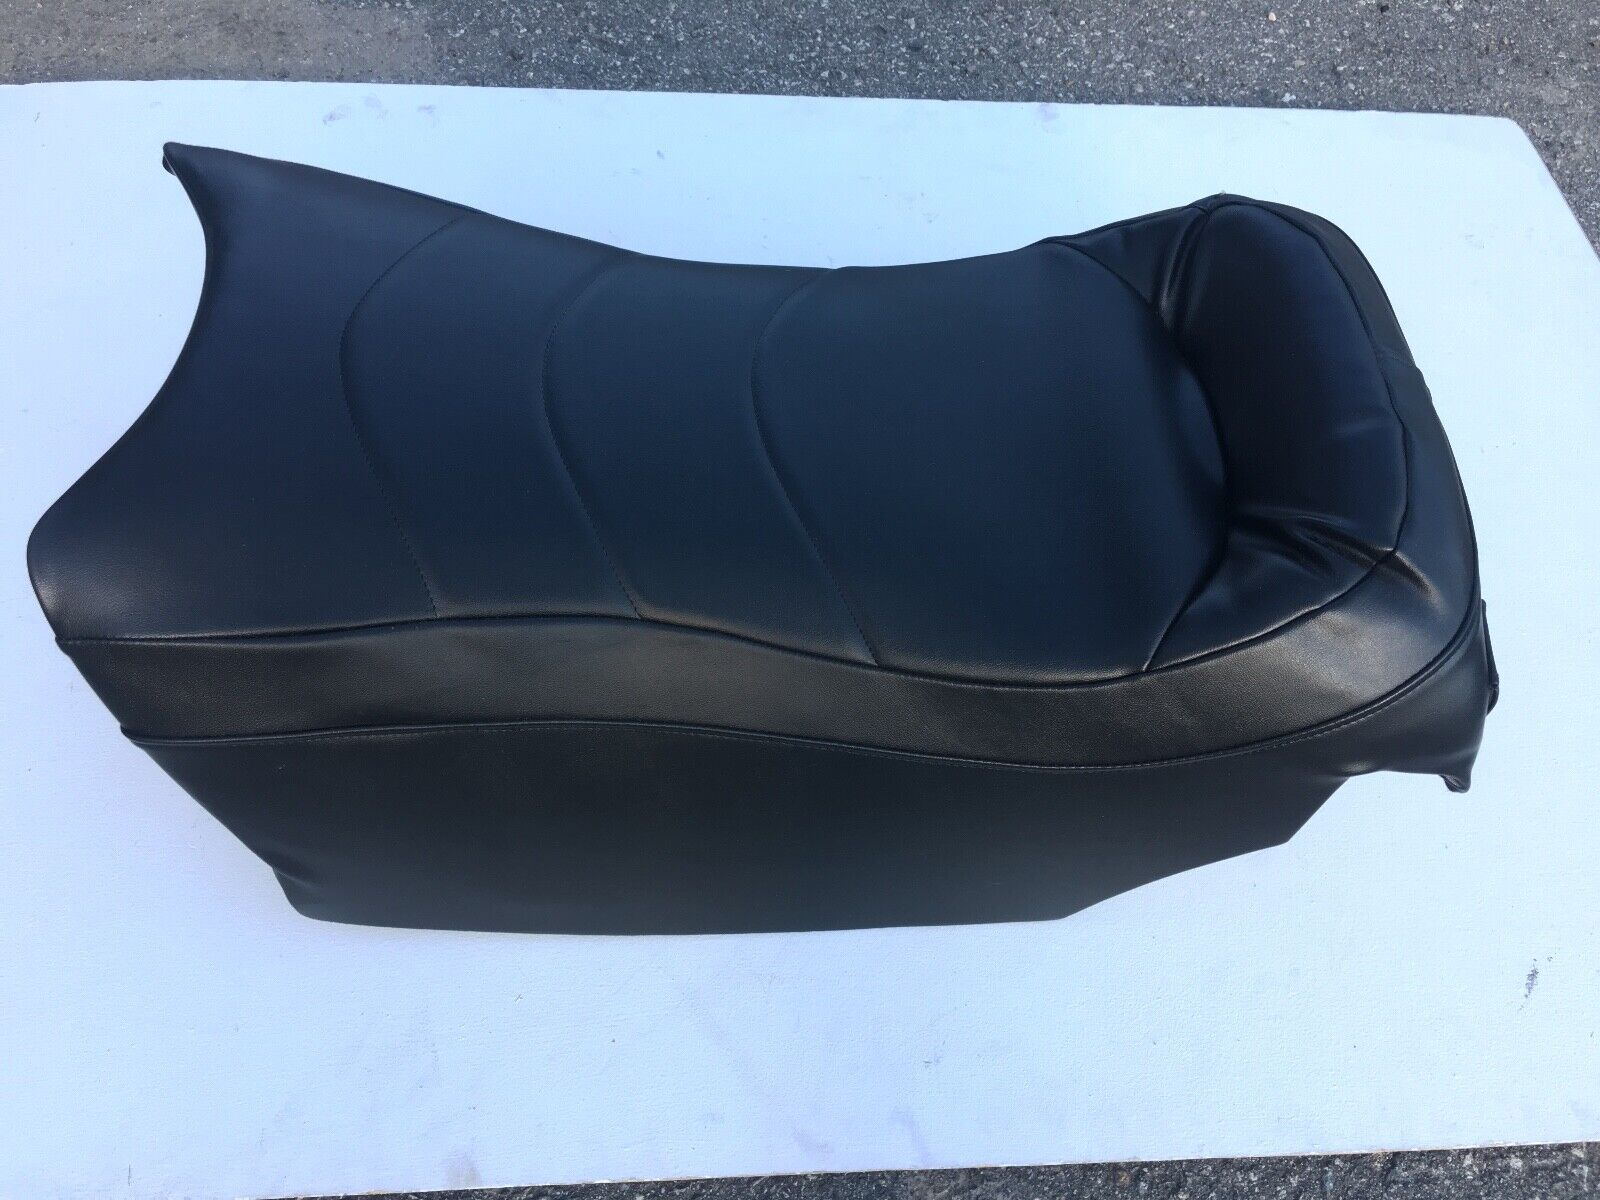 Polaris Edge Touring Snowmobile Seat Assembly / New Seat Cover